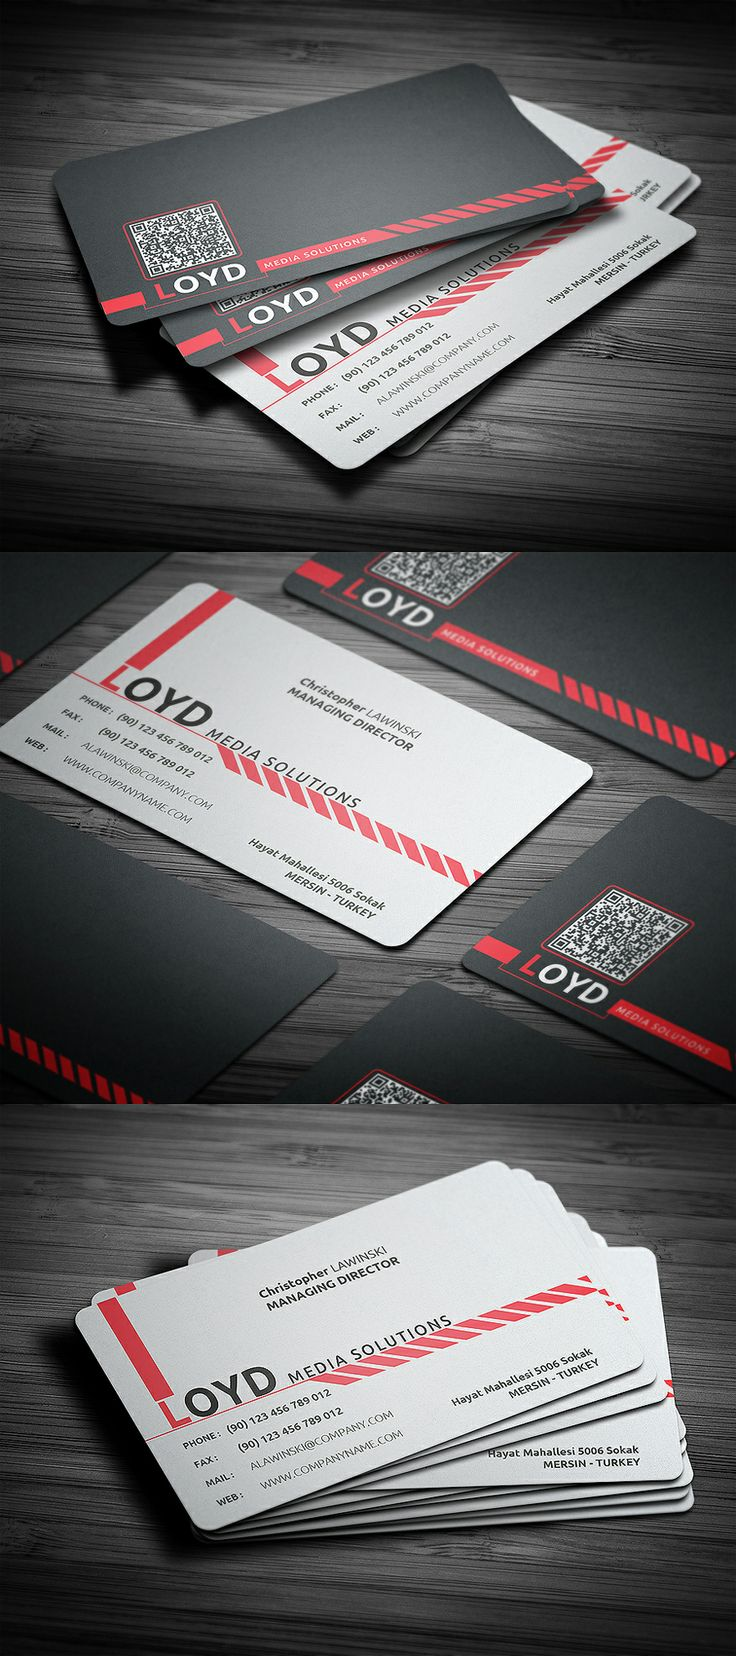 Impressive black and white corporate business card design with round corners, double sided with clean and elegant style.